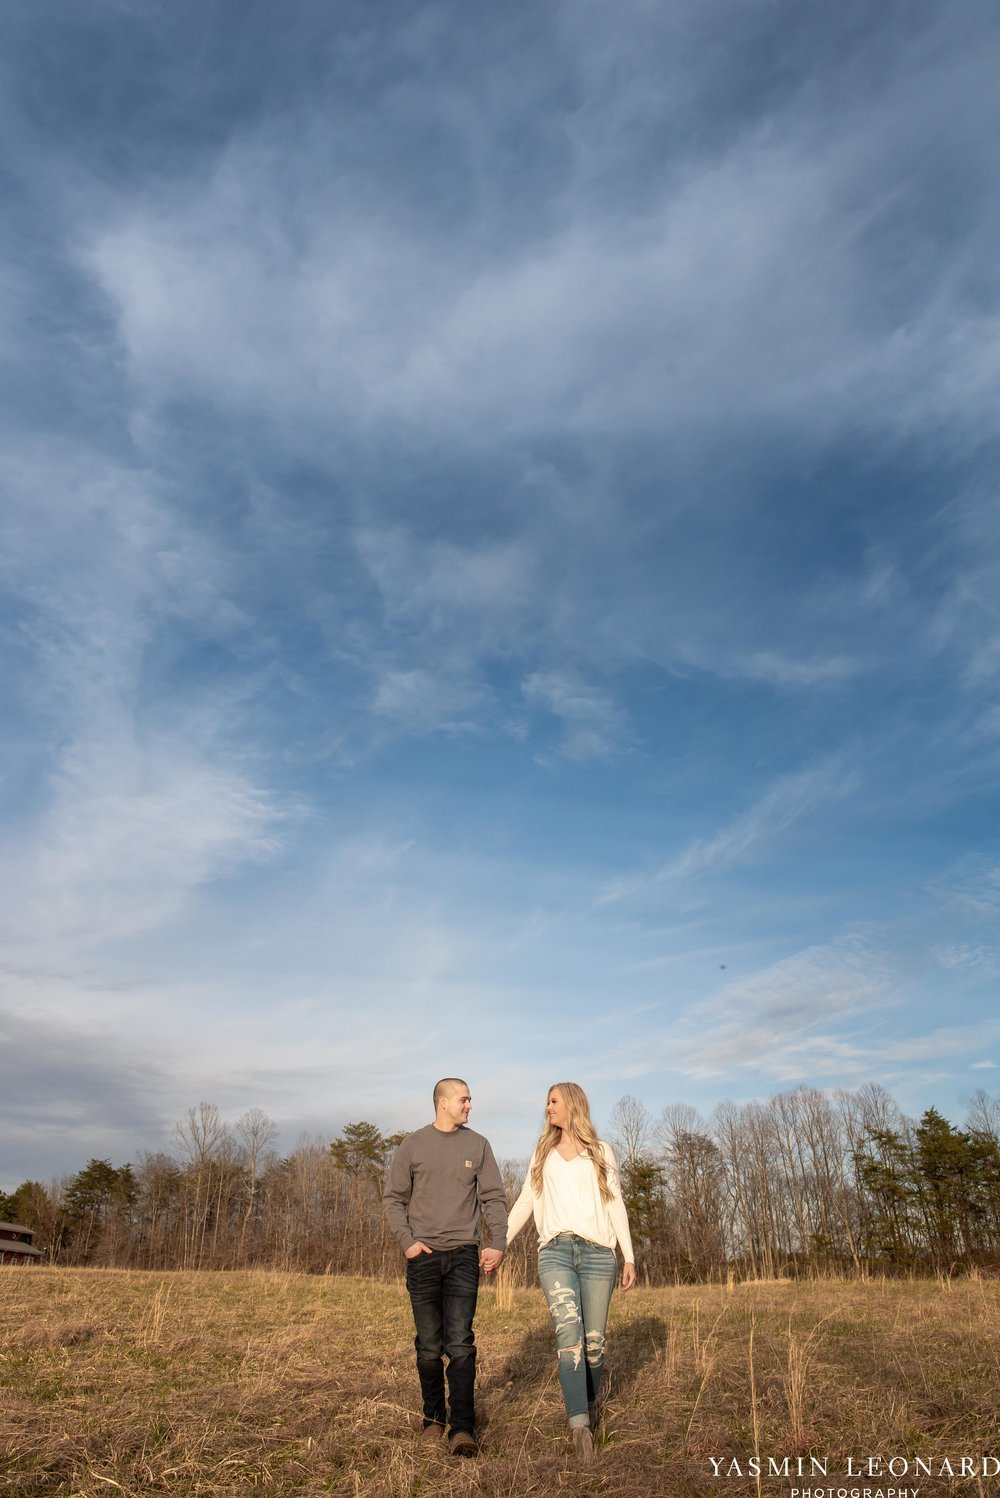 Luna Trail Engagement Session - NC Barns - NC Venues - NC Photographer - NC Country Wedding - Engagement Session Ideas - Engagement Photos - E-Session Photos - Yasmin Leonard Photography-12.jpg